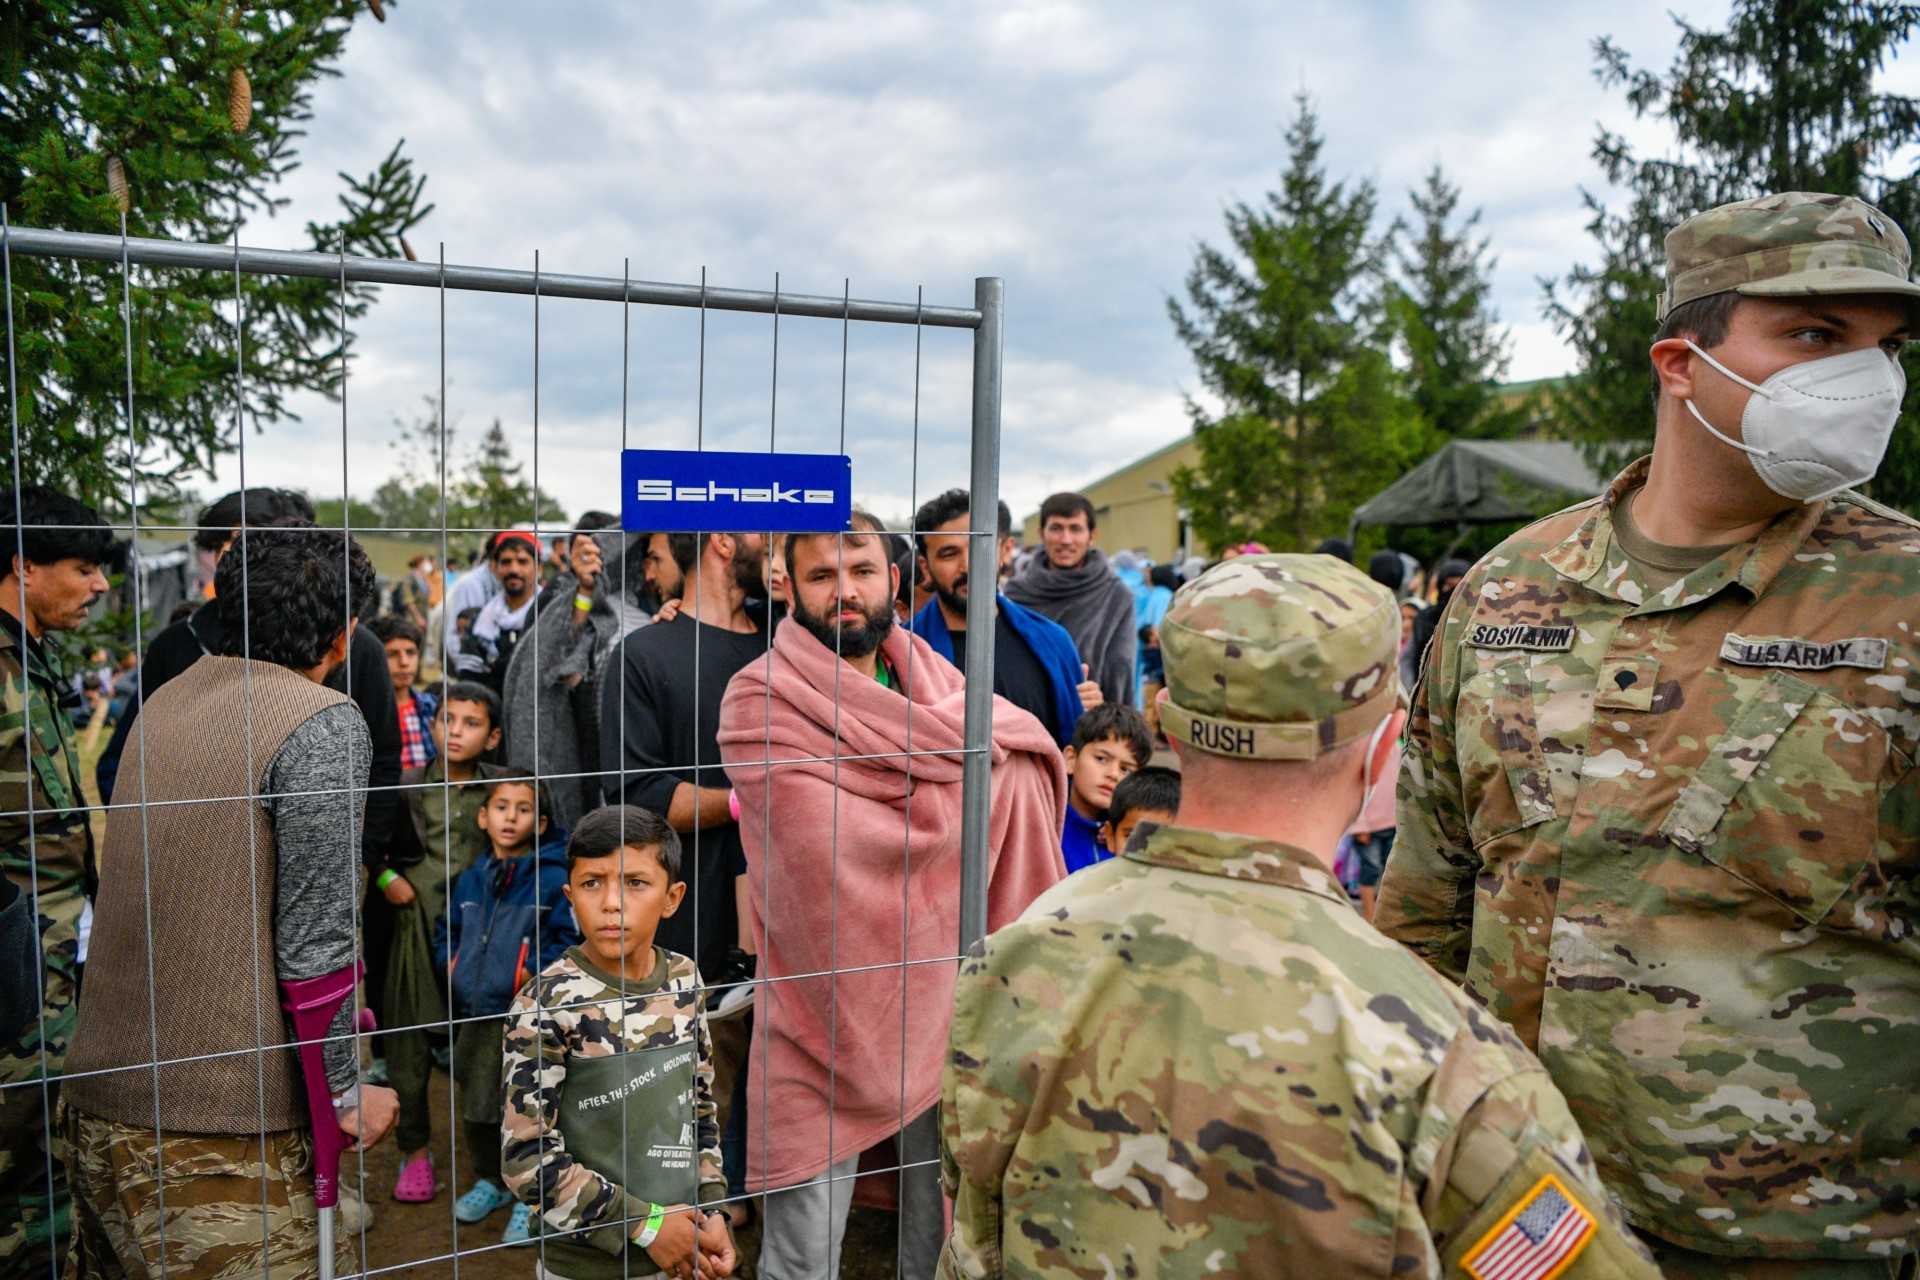 KAISERSLAUTERN, GERMANY - AUGUST 30: Recently-arrived refugees from Afghanistan seen at a temporary camp at the U.S. Army's Rhine Ordnance Barracks (ROB), where they are being temporarily housed, on August 30, 2021 in Kaiserslautern, Germany. Several U.S. military facilities with the capacity to house up to several thousand evacuees are participating, in an operation called Operation Allied Refuge. (Photo by Sascha Schuermann/Getty Images)